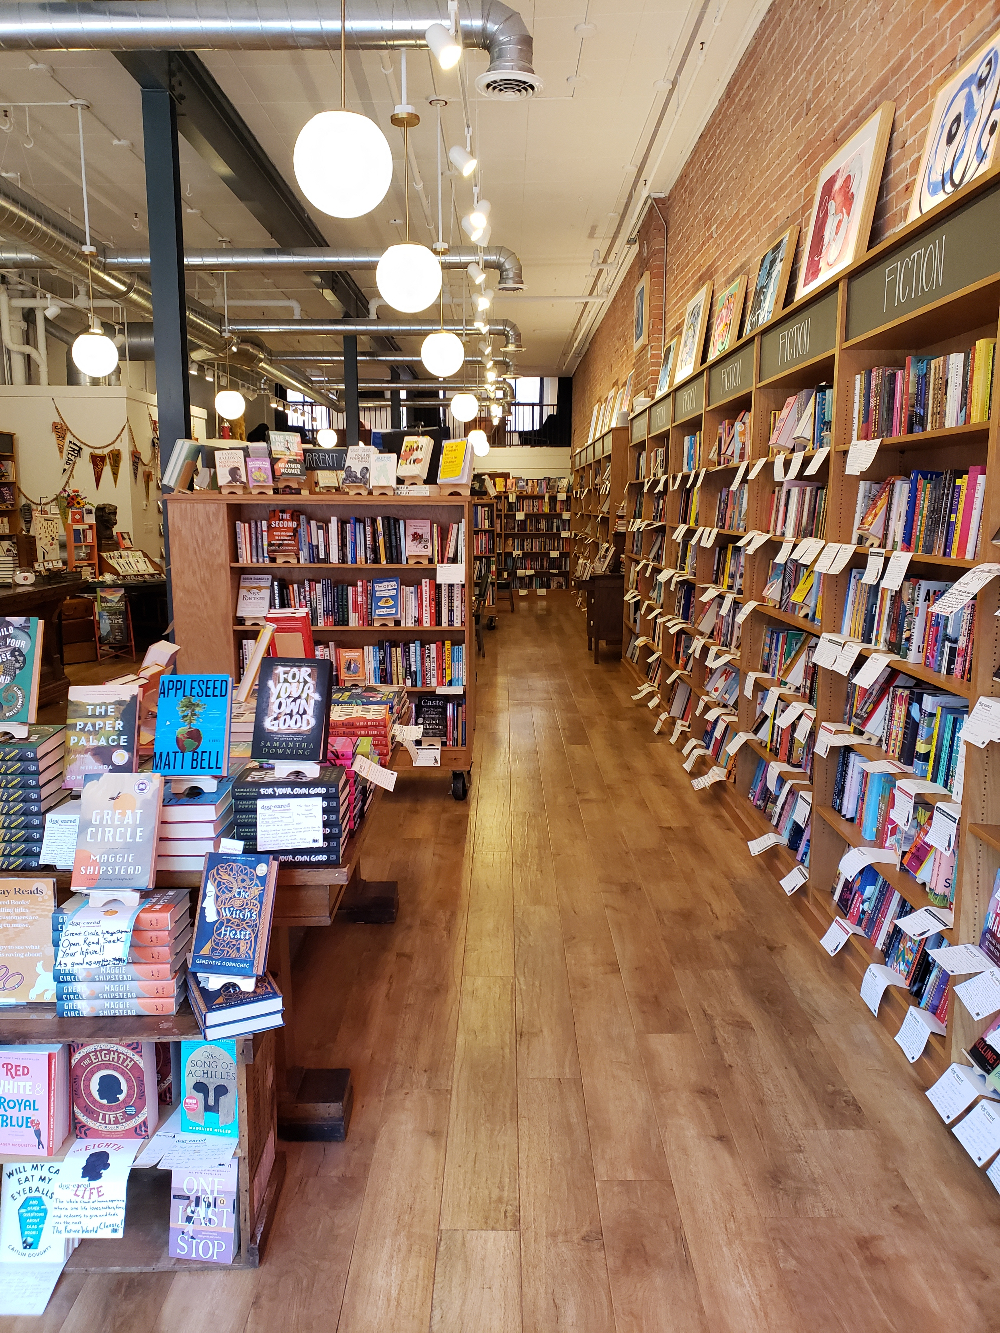 Belletrist's August indie bookstore pick believes that reading and storytelling make us better humans.